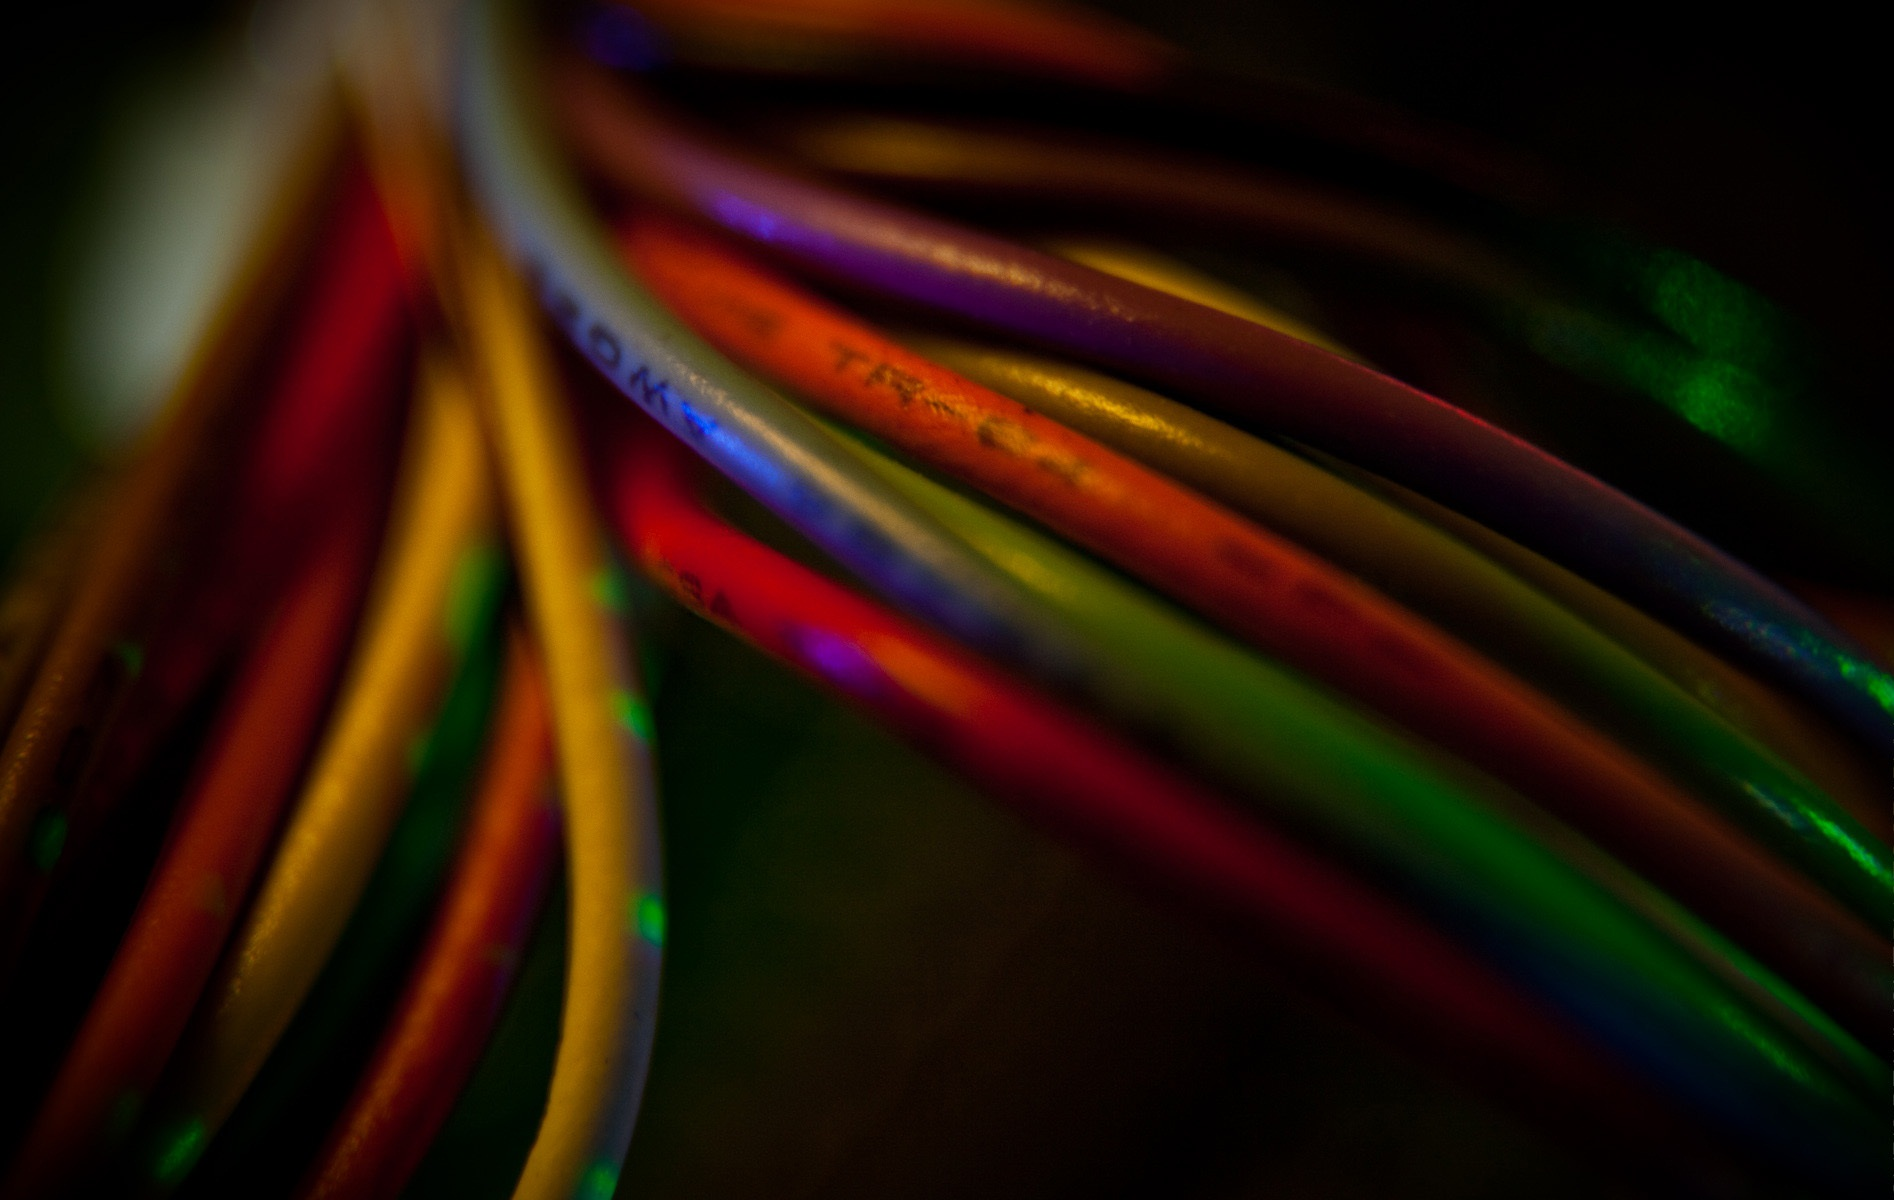 colorful ethernet cable wallpapers - 1894x1200 - 342239